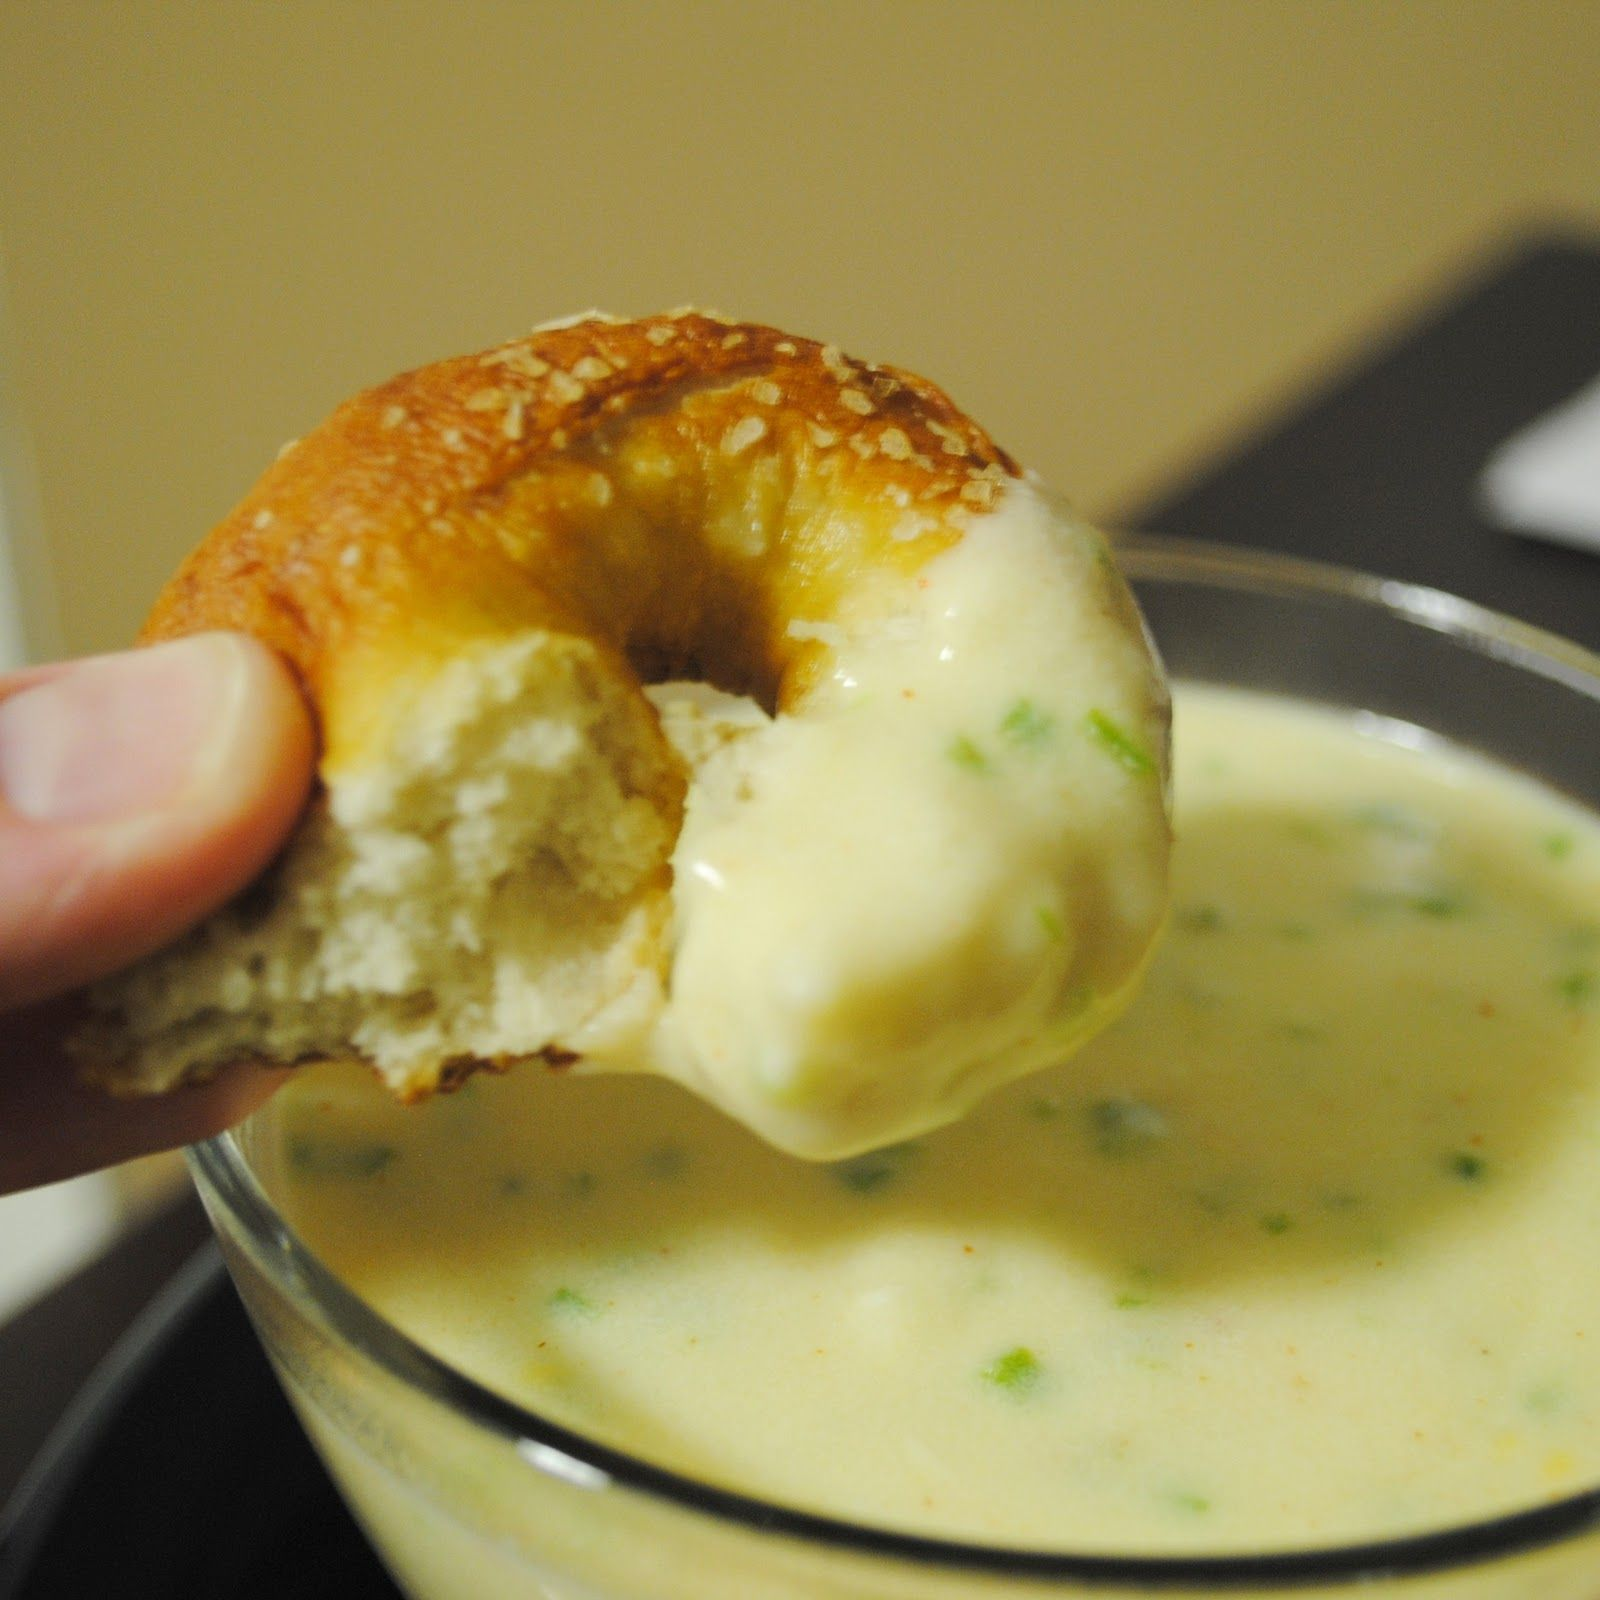 Homemade soft pretzels with jalapeno cheese sauce.